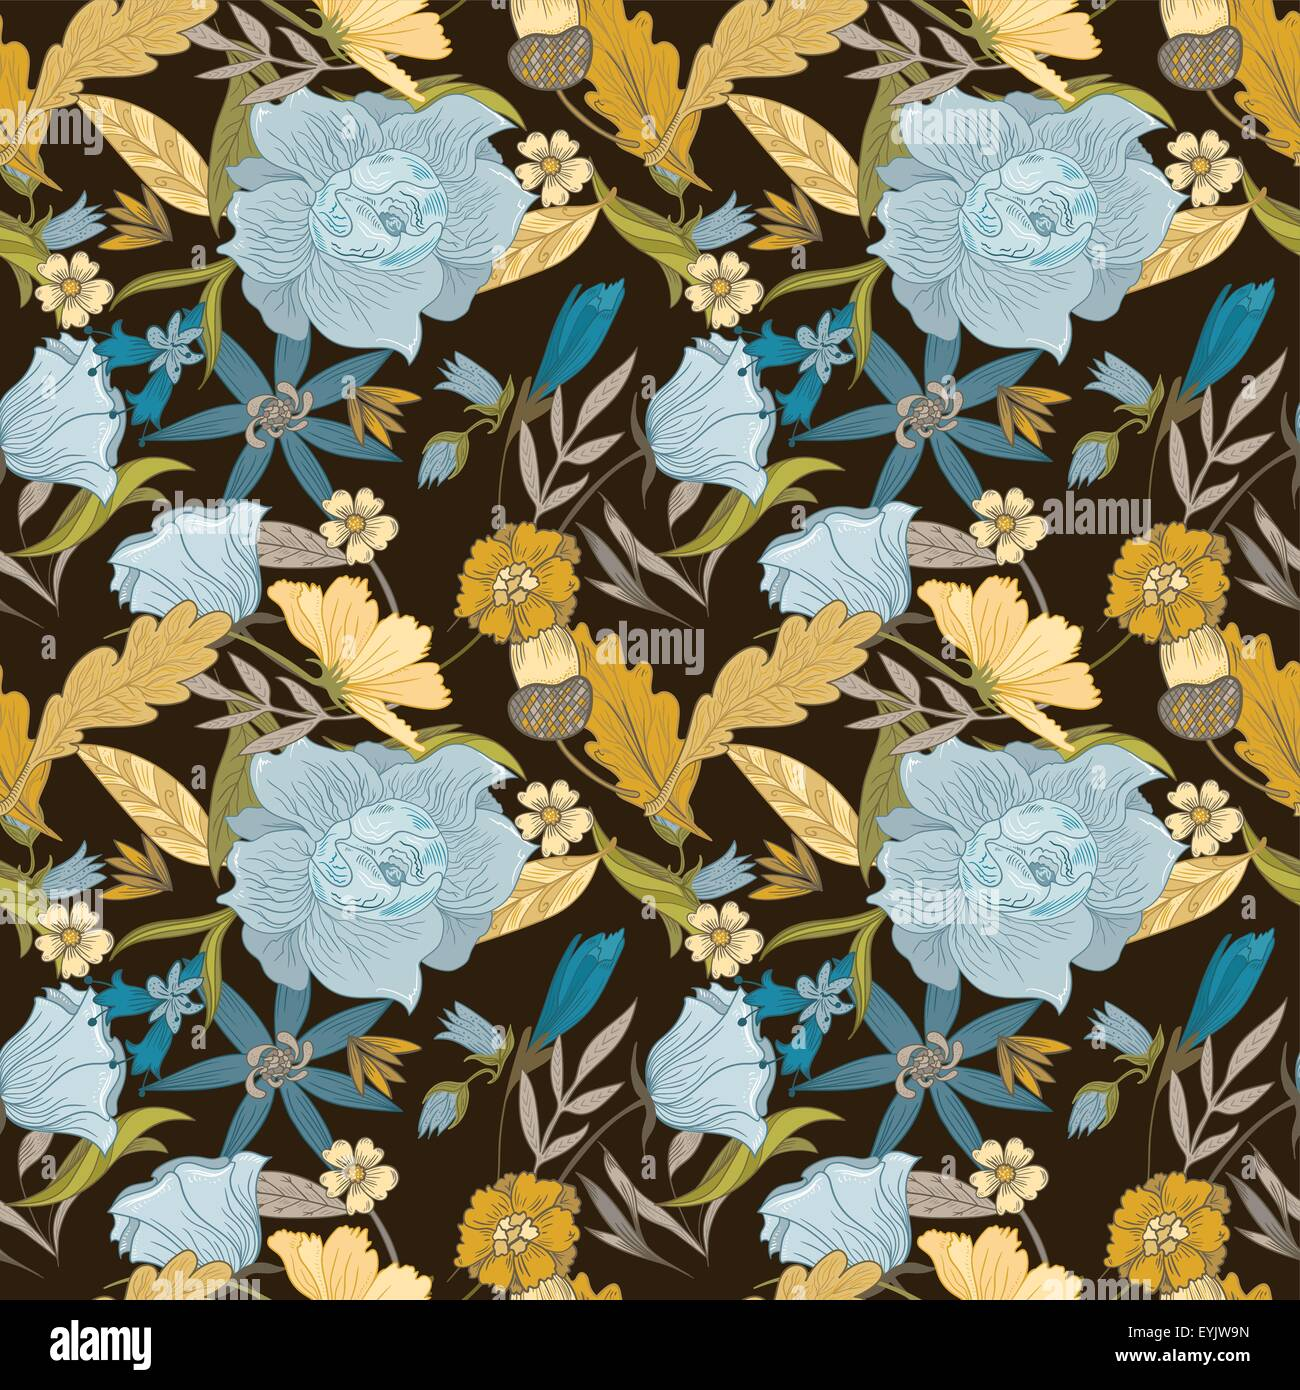 Brown yellow blue flowers seamless pattern background fall stock seamless texture with blue flowers and yellow leaves on brown background for textile and wallpaper design izmirmasajfo